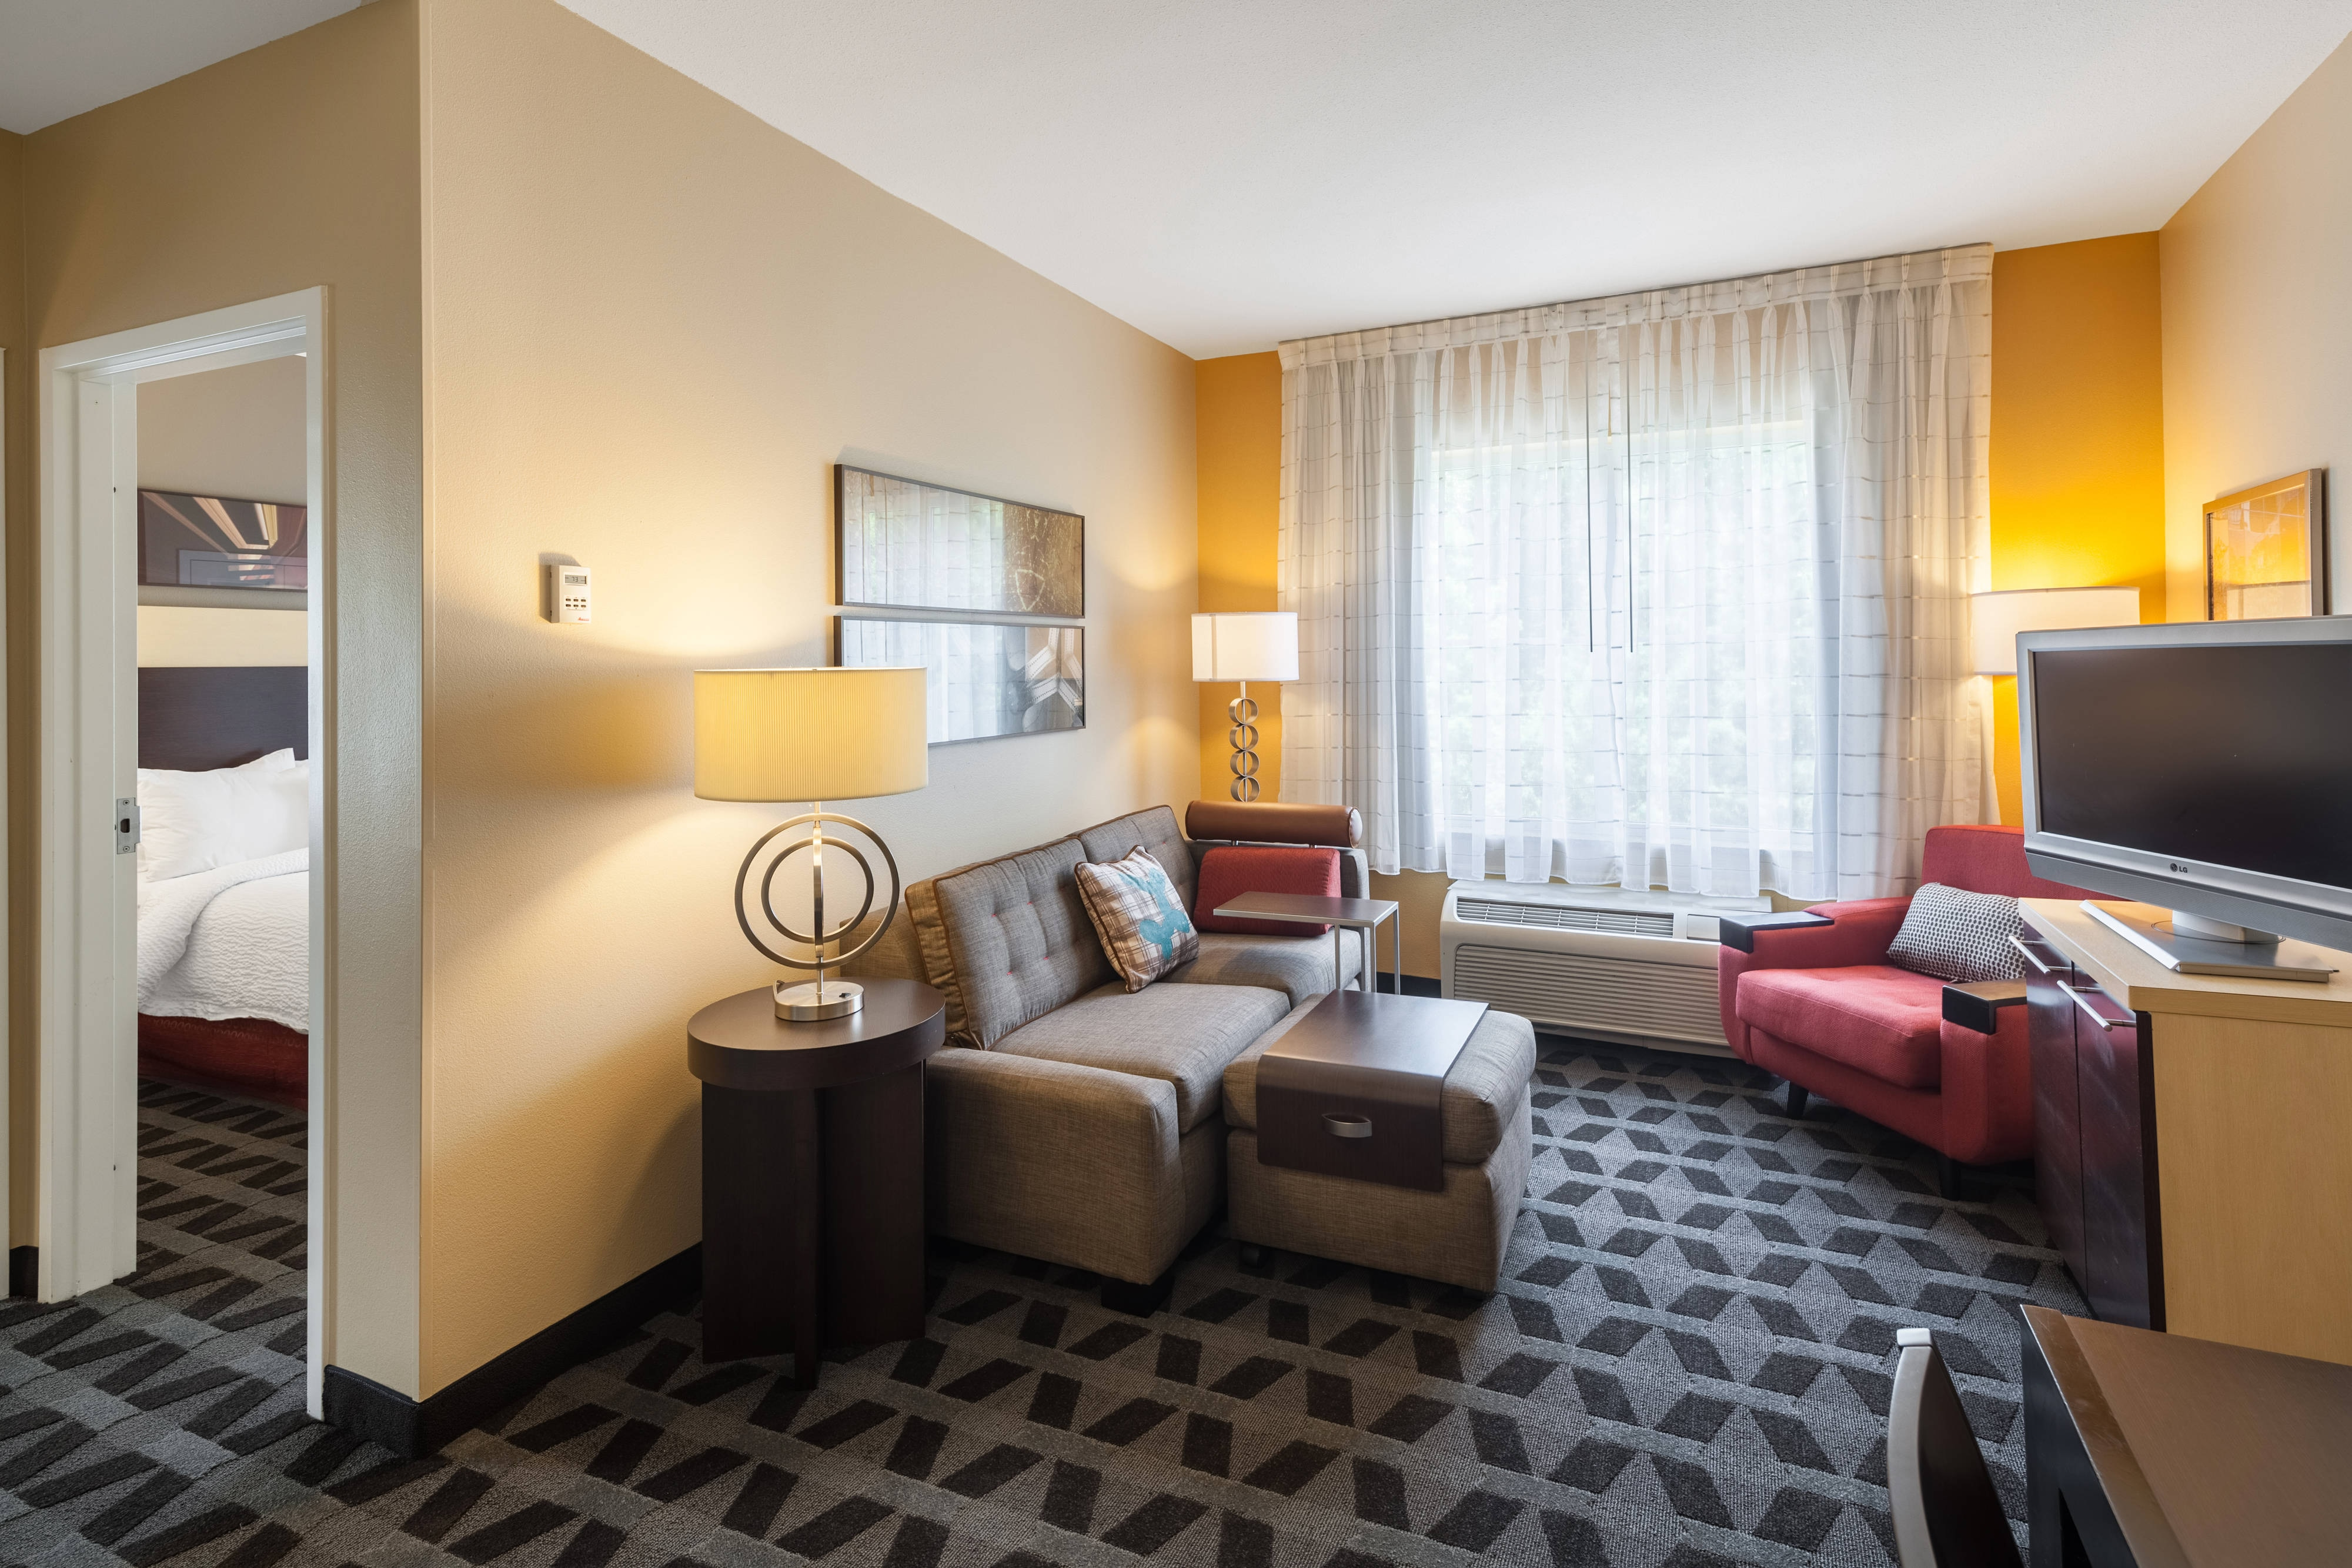 Suite Hotel Jacksonville Florida Towneplace Suites Jacksonville Butler Boulevard Perfect For